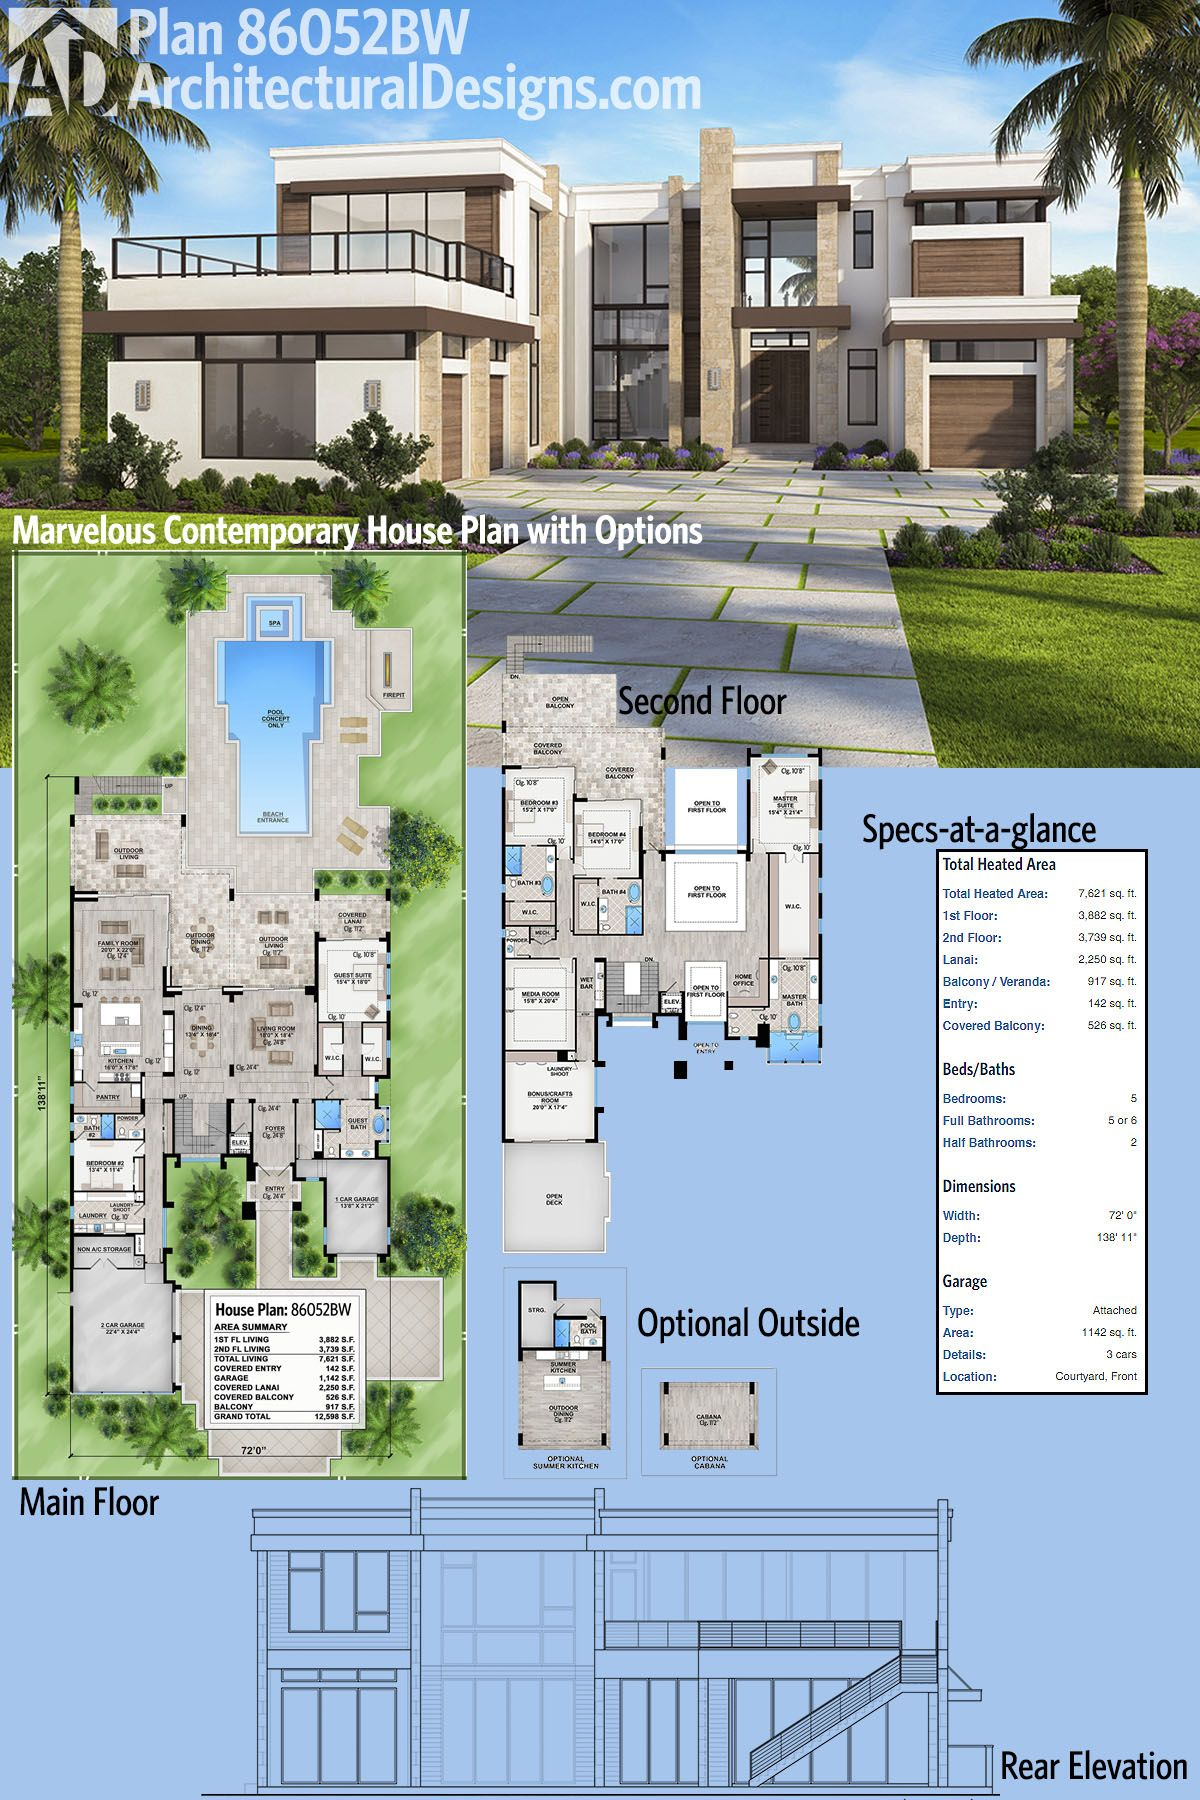 Plan 86052BW: Marvelous Contemporary House Plan with